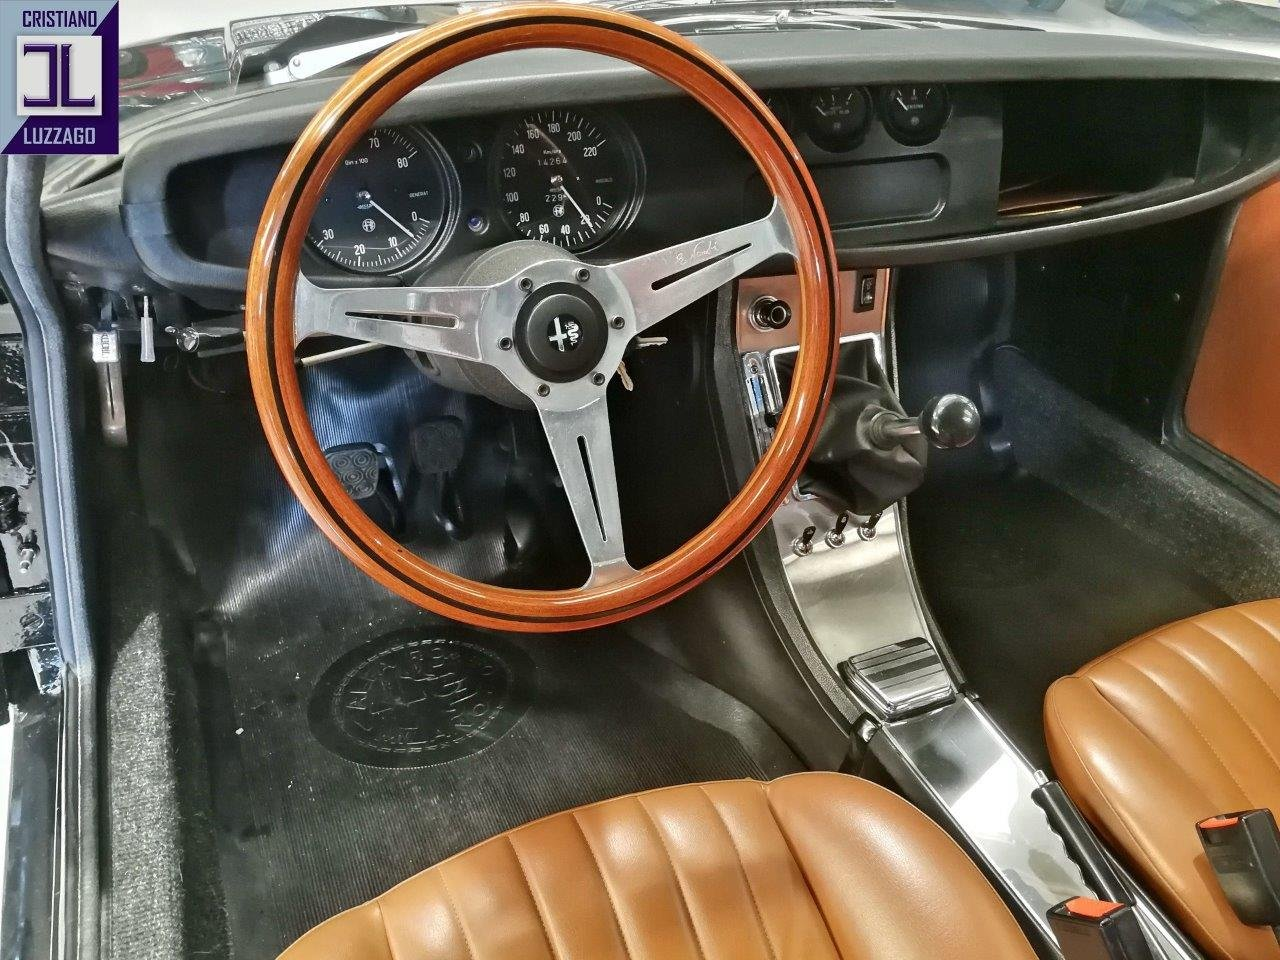 1971 ALFA ROMEO GT JUNIOR ZAGATO 1300 For Sale (picture 5 of 6)